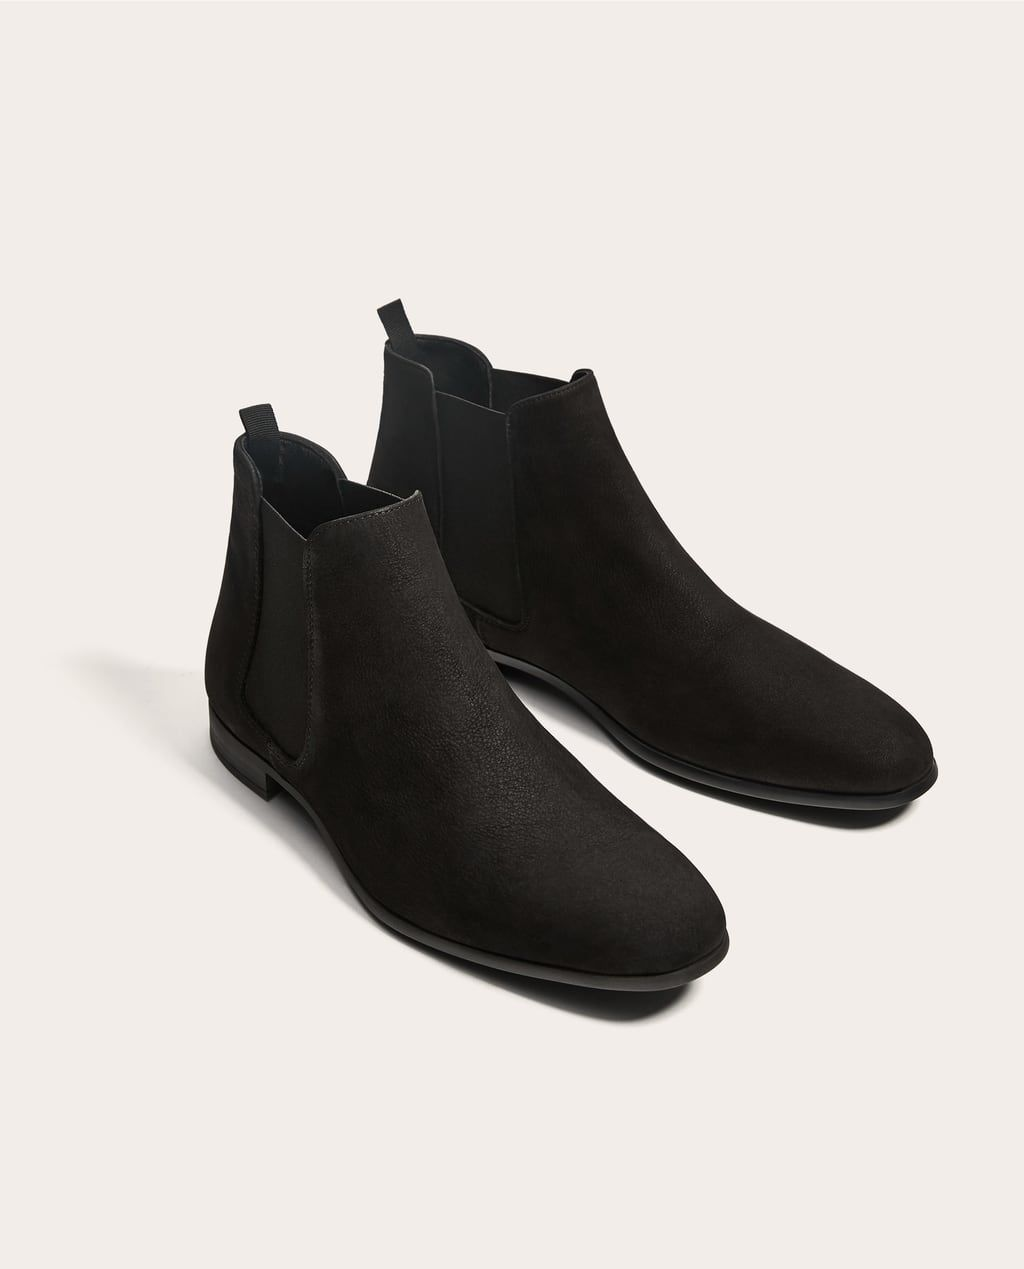 0c184548b01 BLACK LEATHER ANKLE BOOTS-Boots and Ankle Boots-SHOES-MAN | ZARA ...